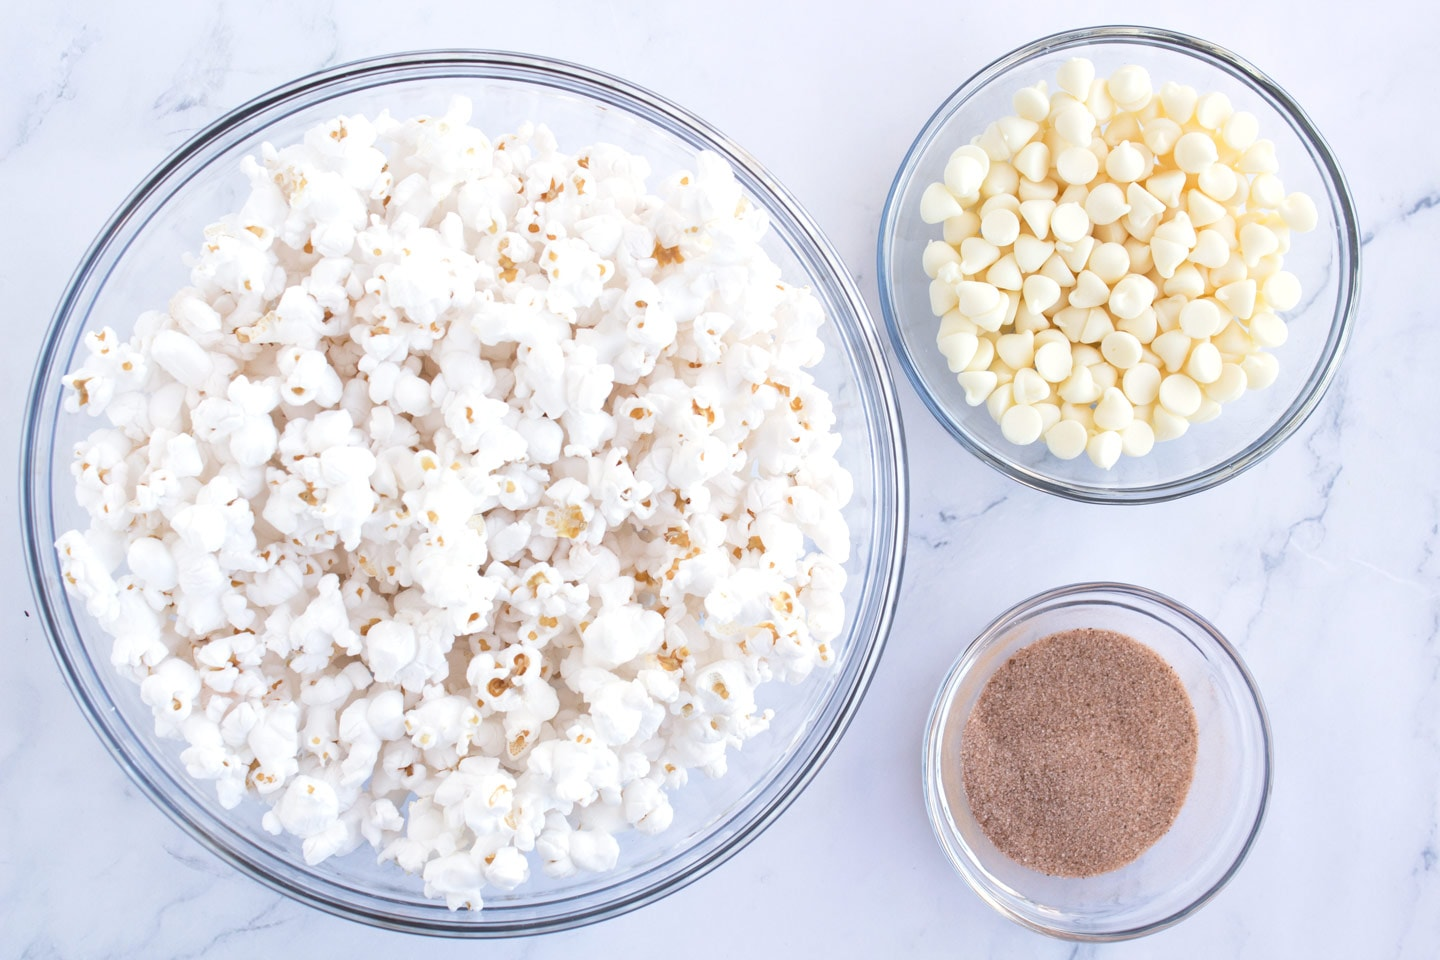 Ingredients for popcorn on counter